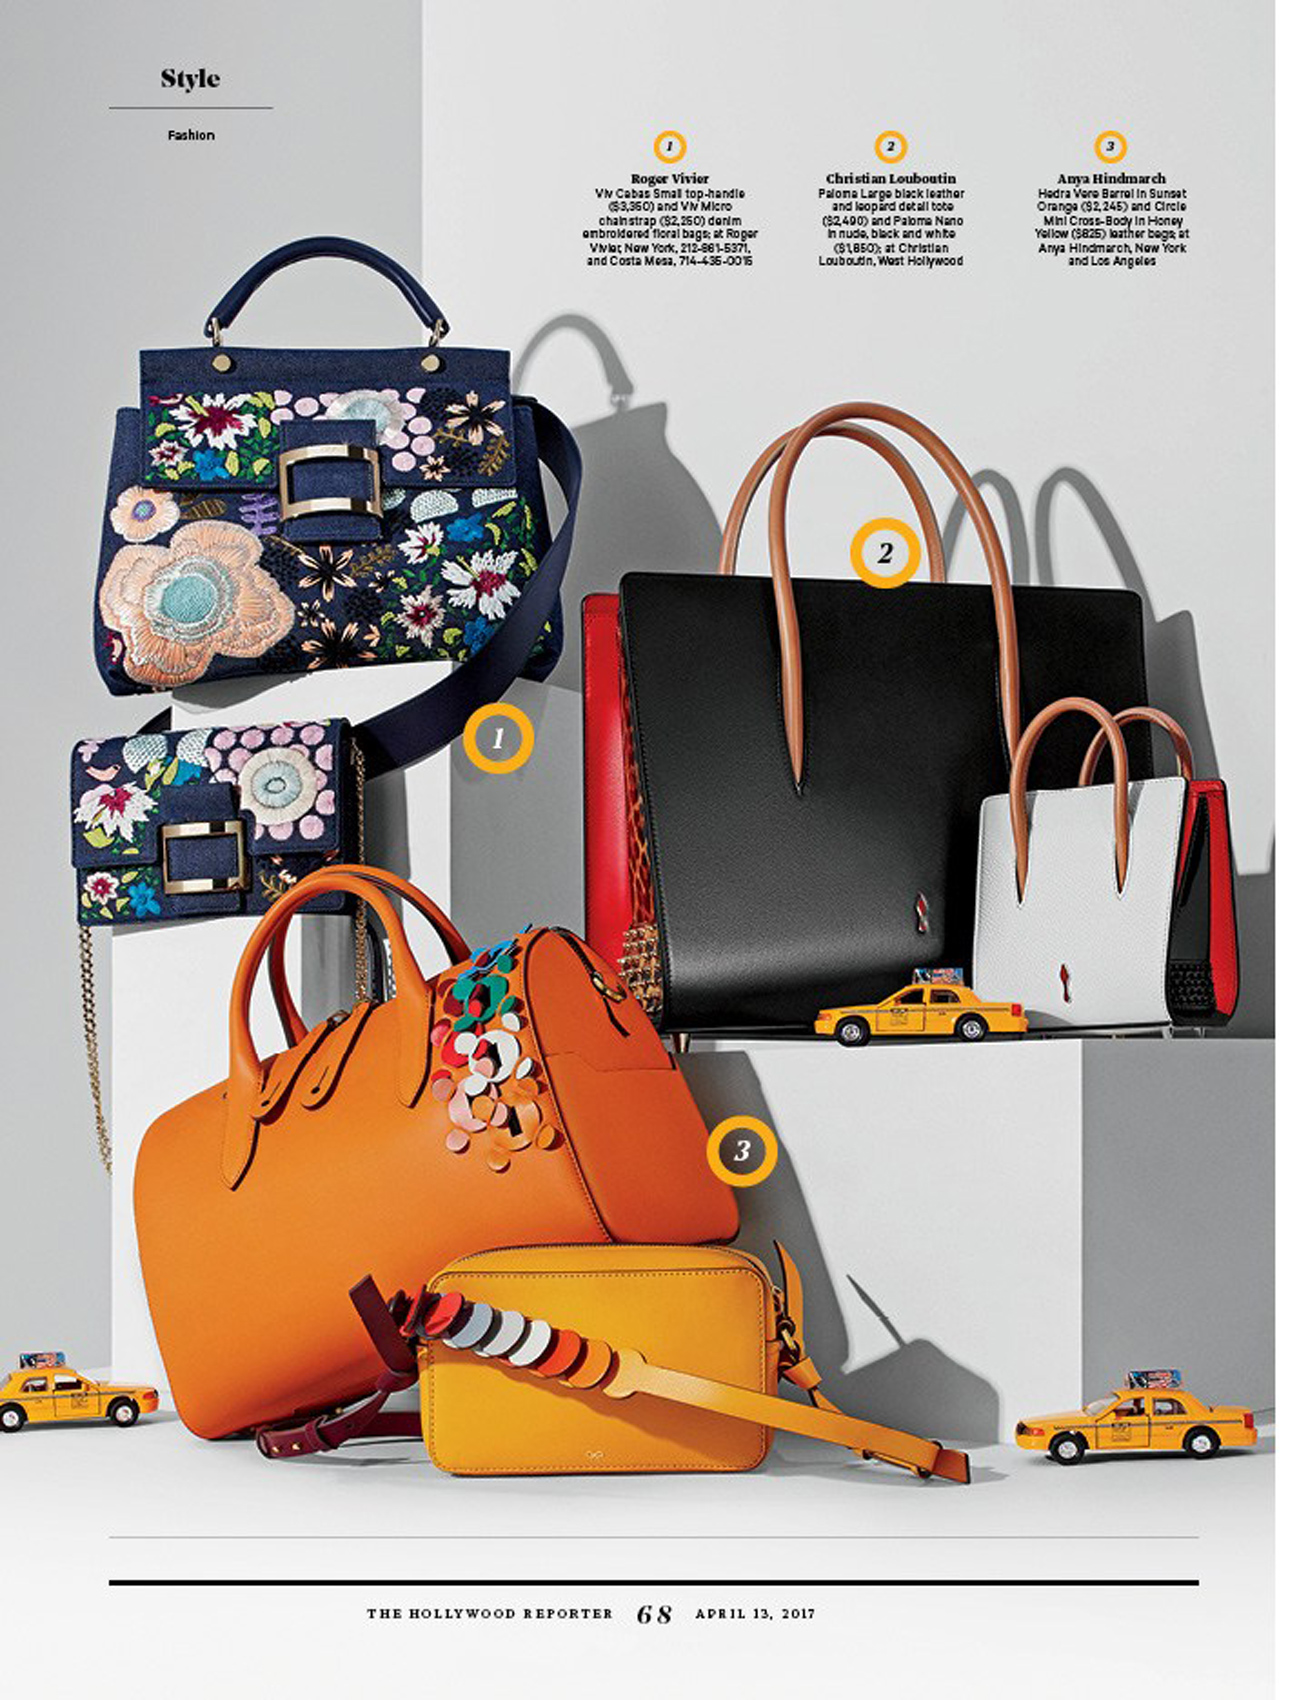 THR_Handbags_Cab2_Web